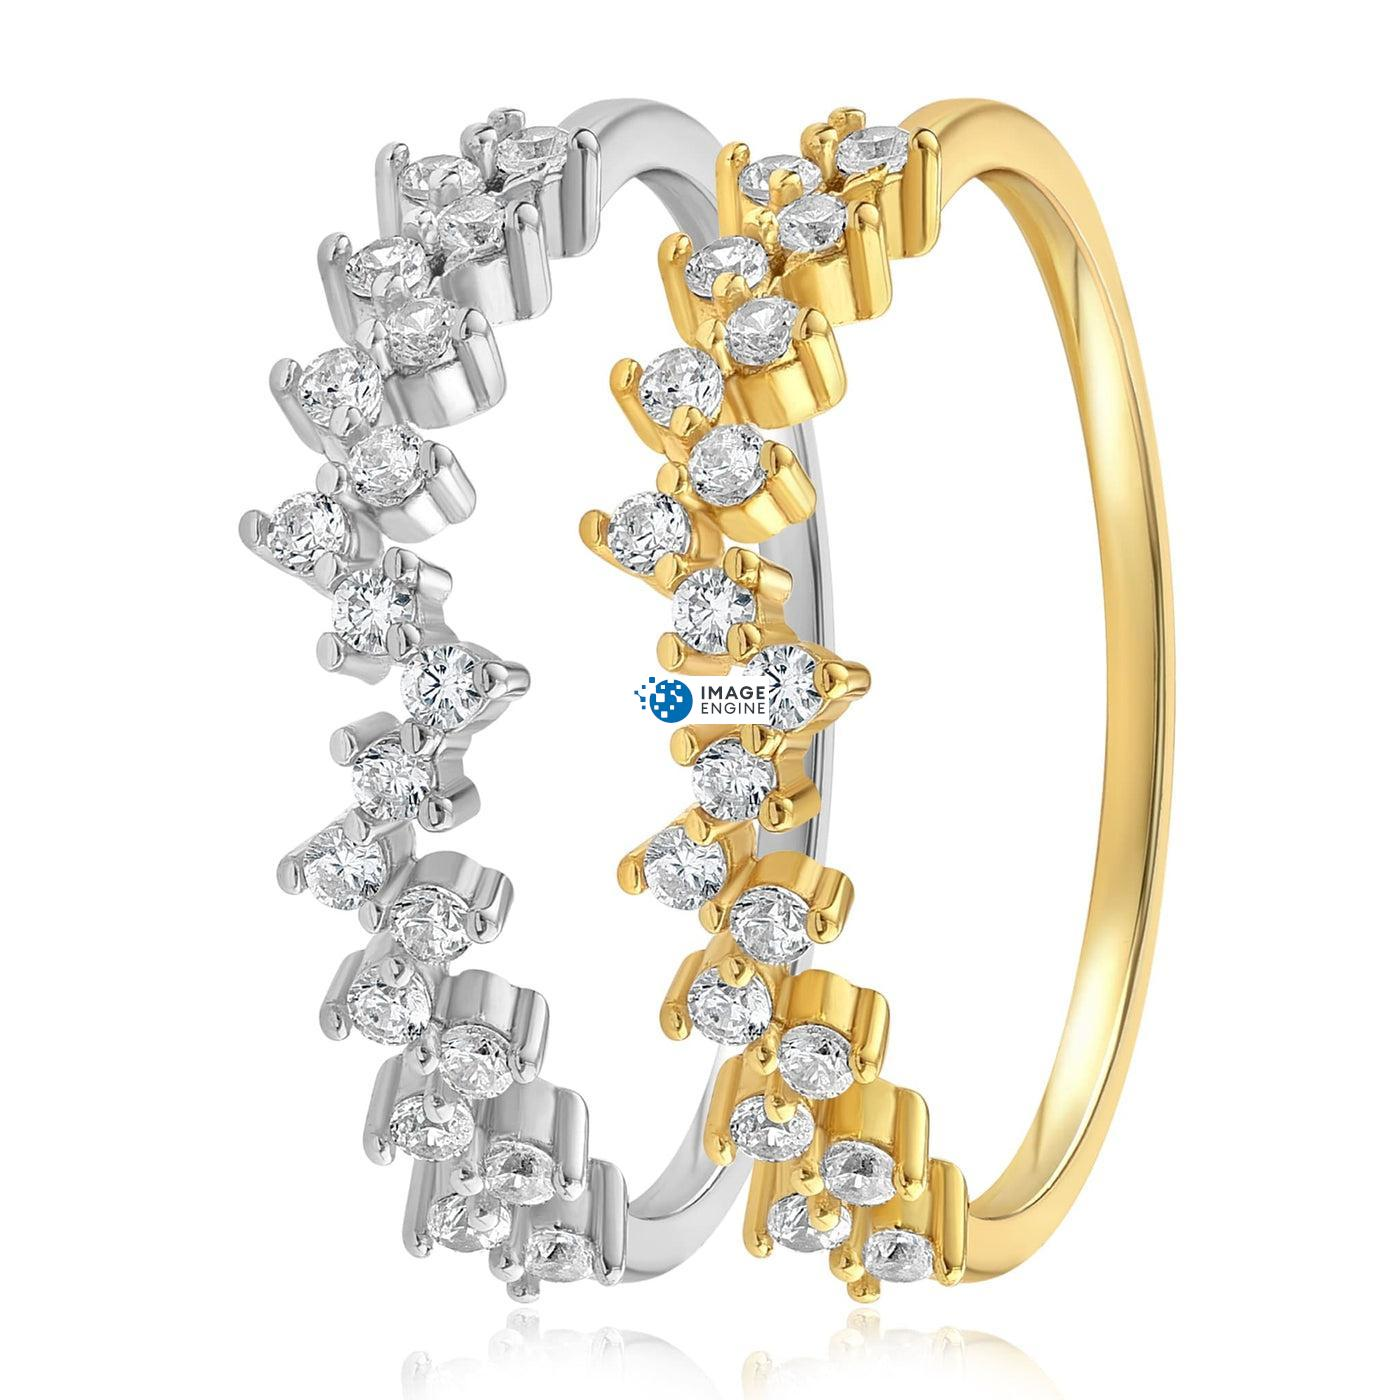 Esther Petite Cluster Ring - Side by Side - 18K Yellow Gold and 925 Sterling Silver